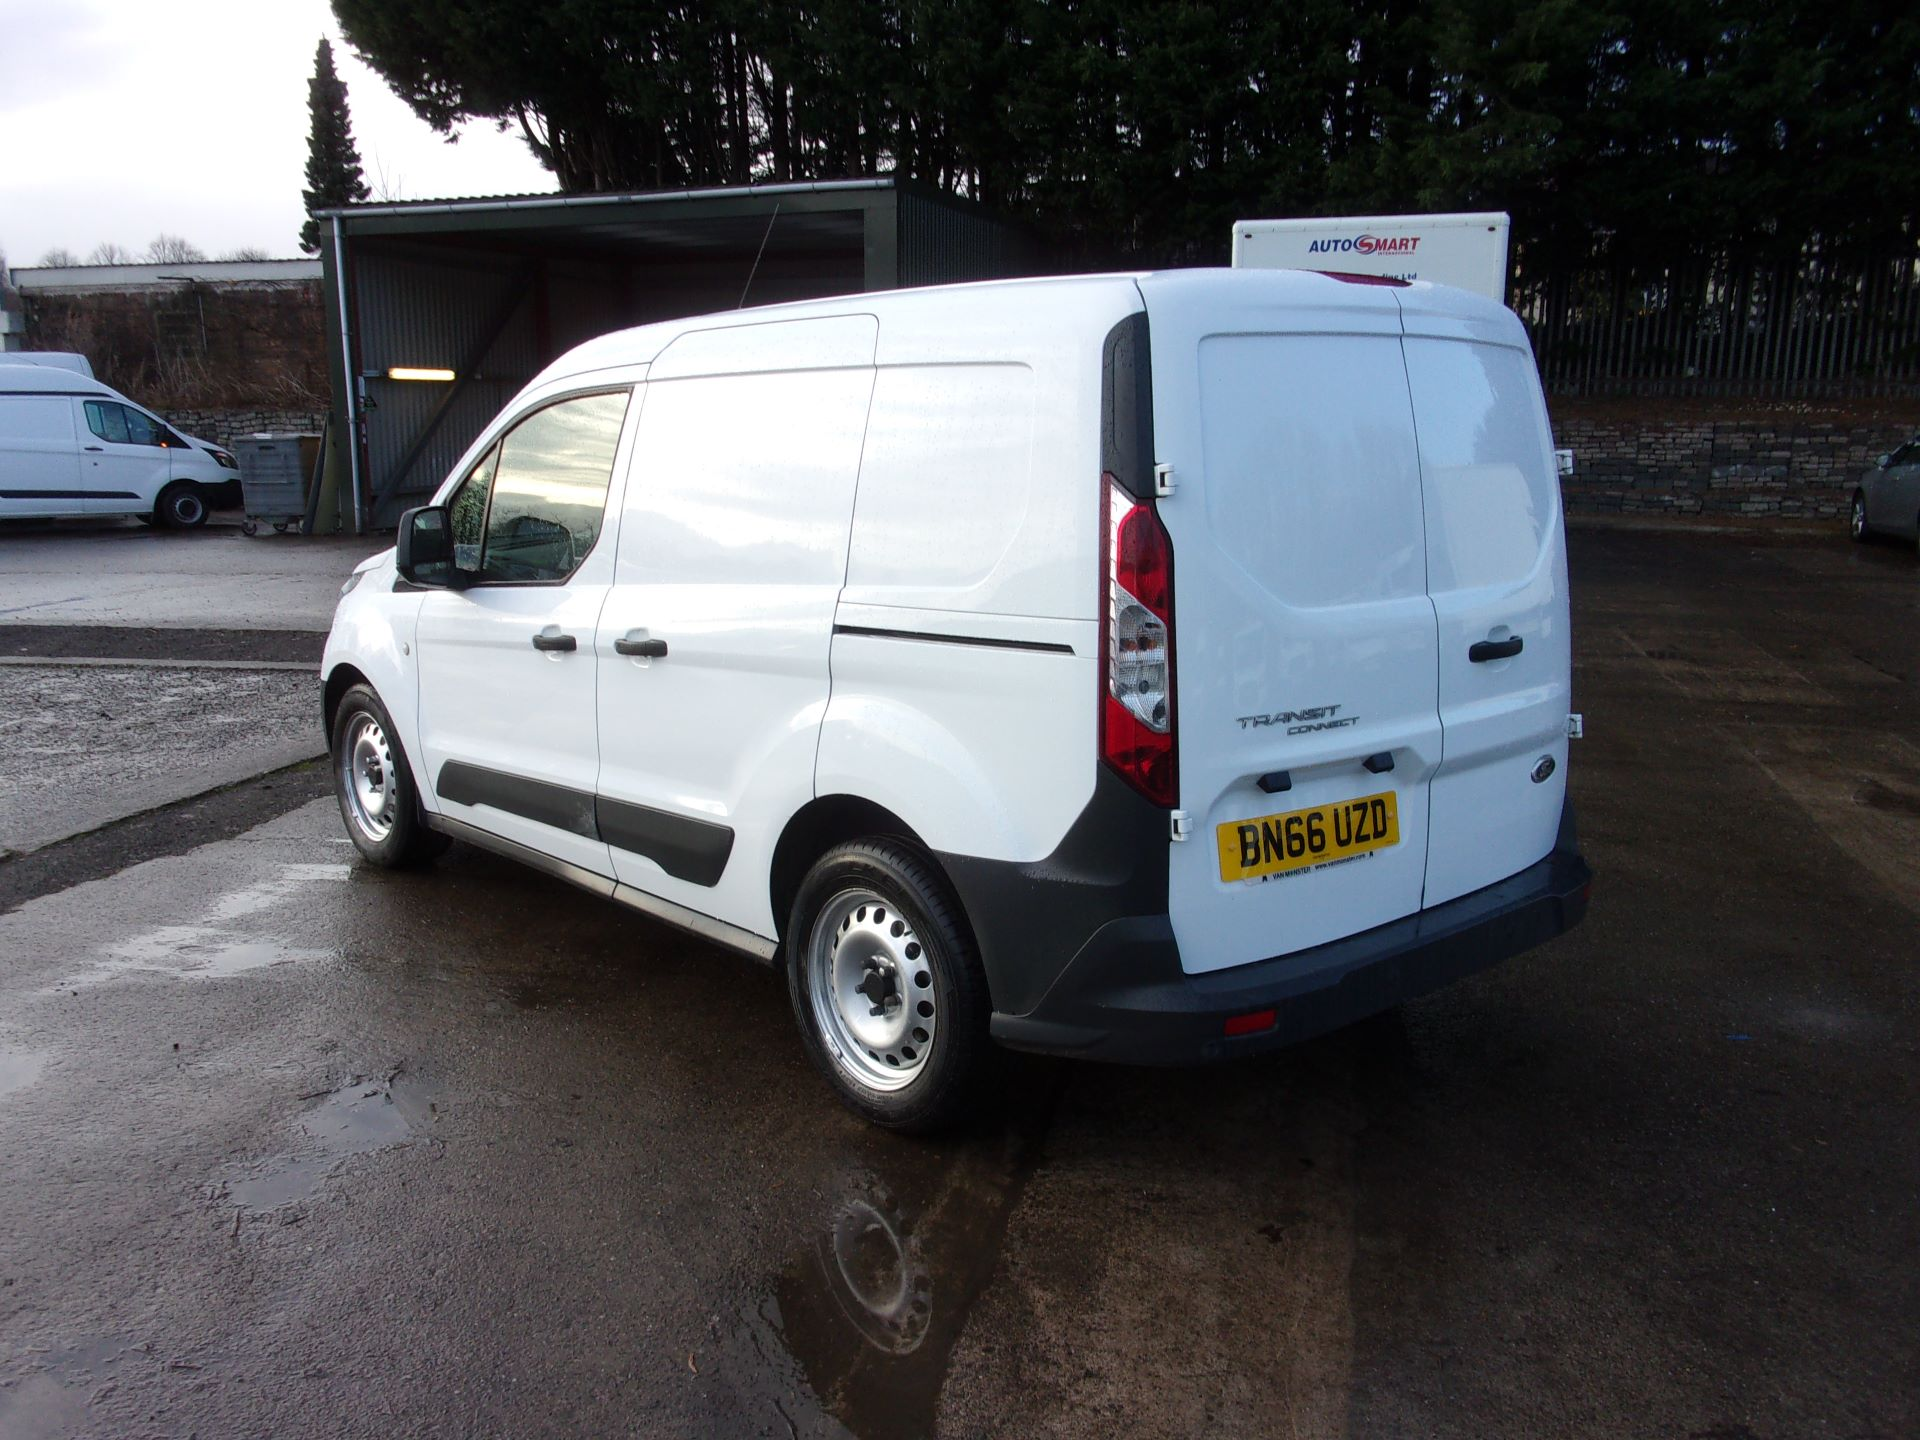 2016 Ford Transit Connect 200 L1 DIESEL 1.6 TDCI 75PS VAN EURO 5 (BN66UZD) Image 11